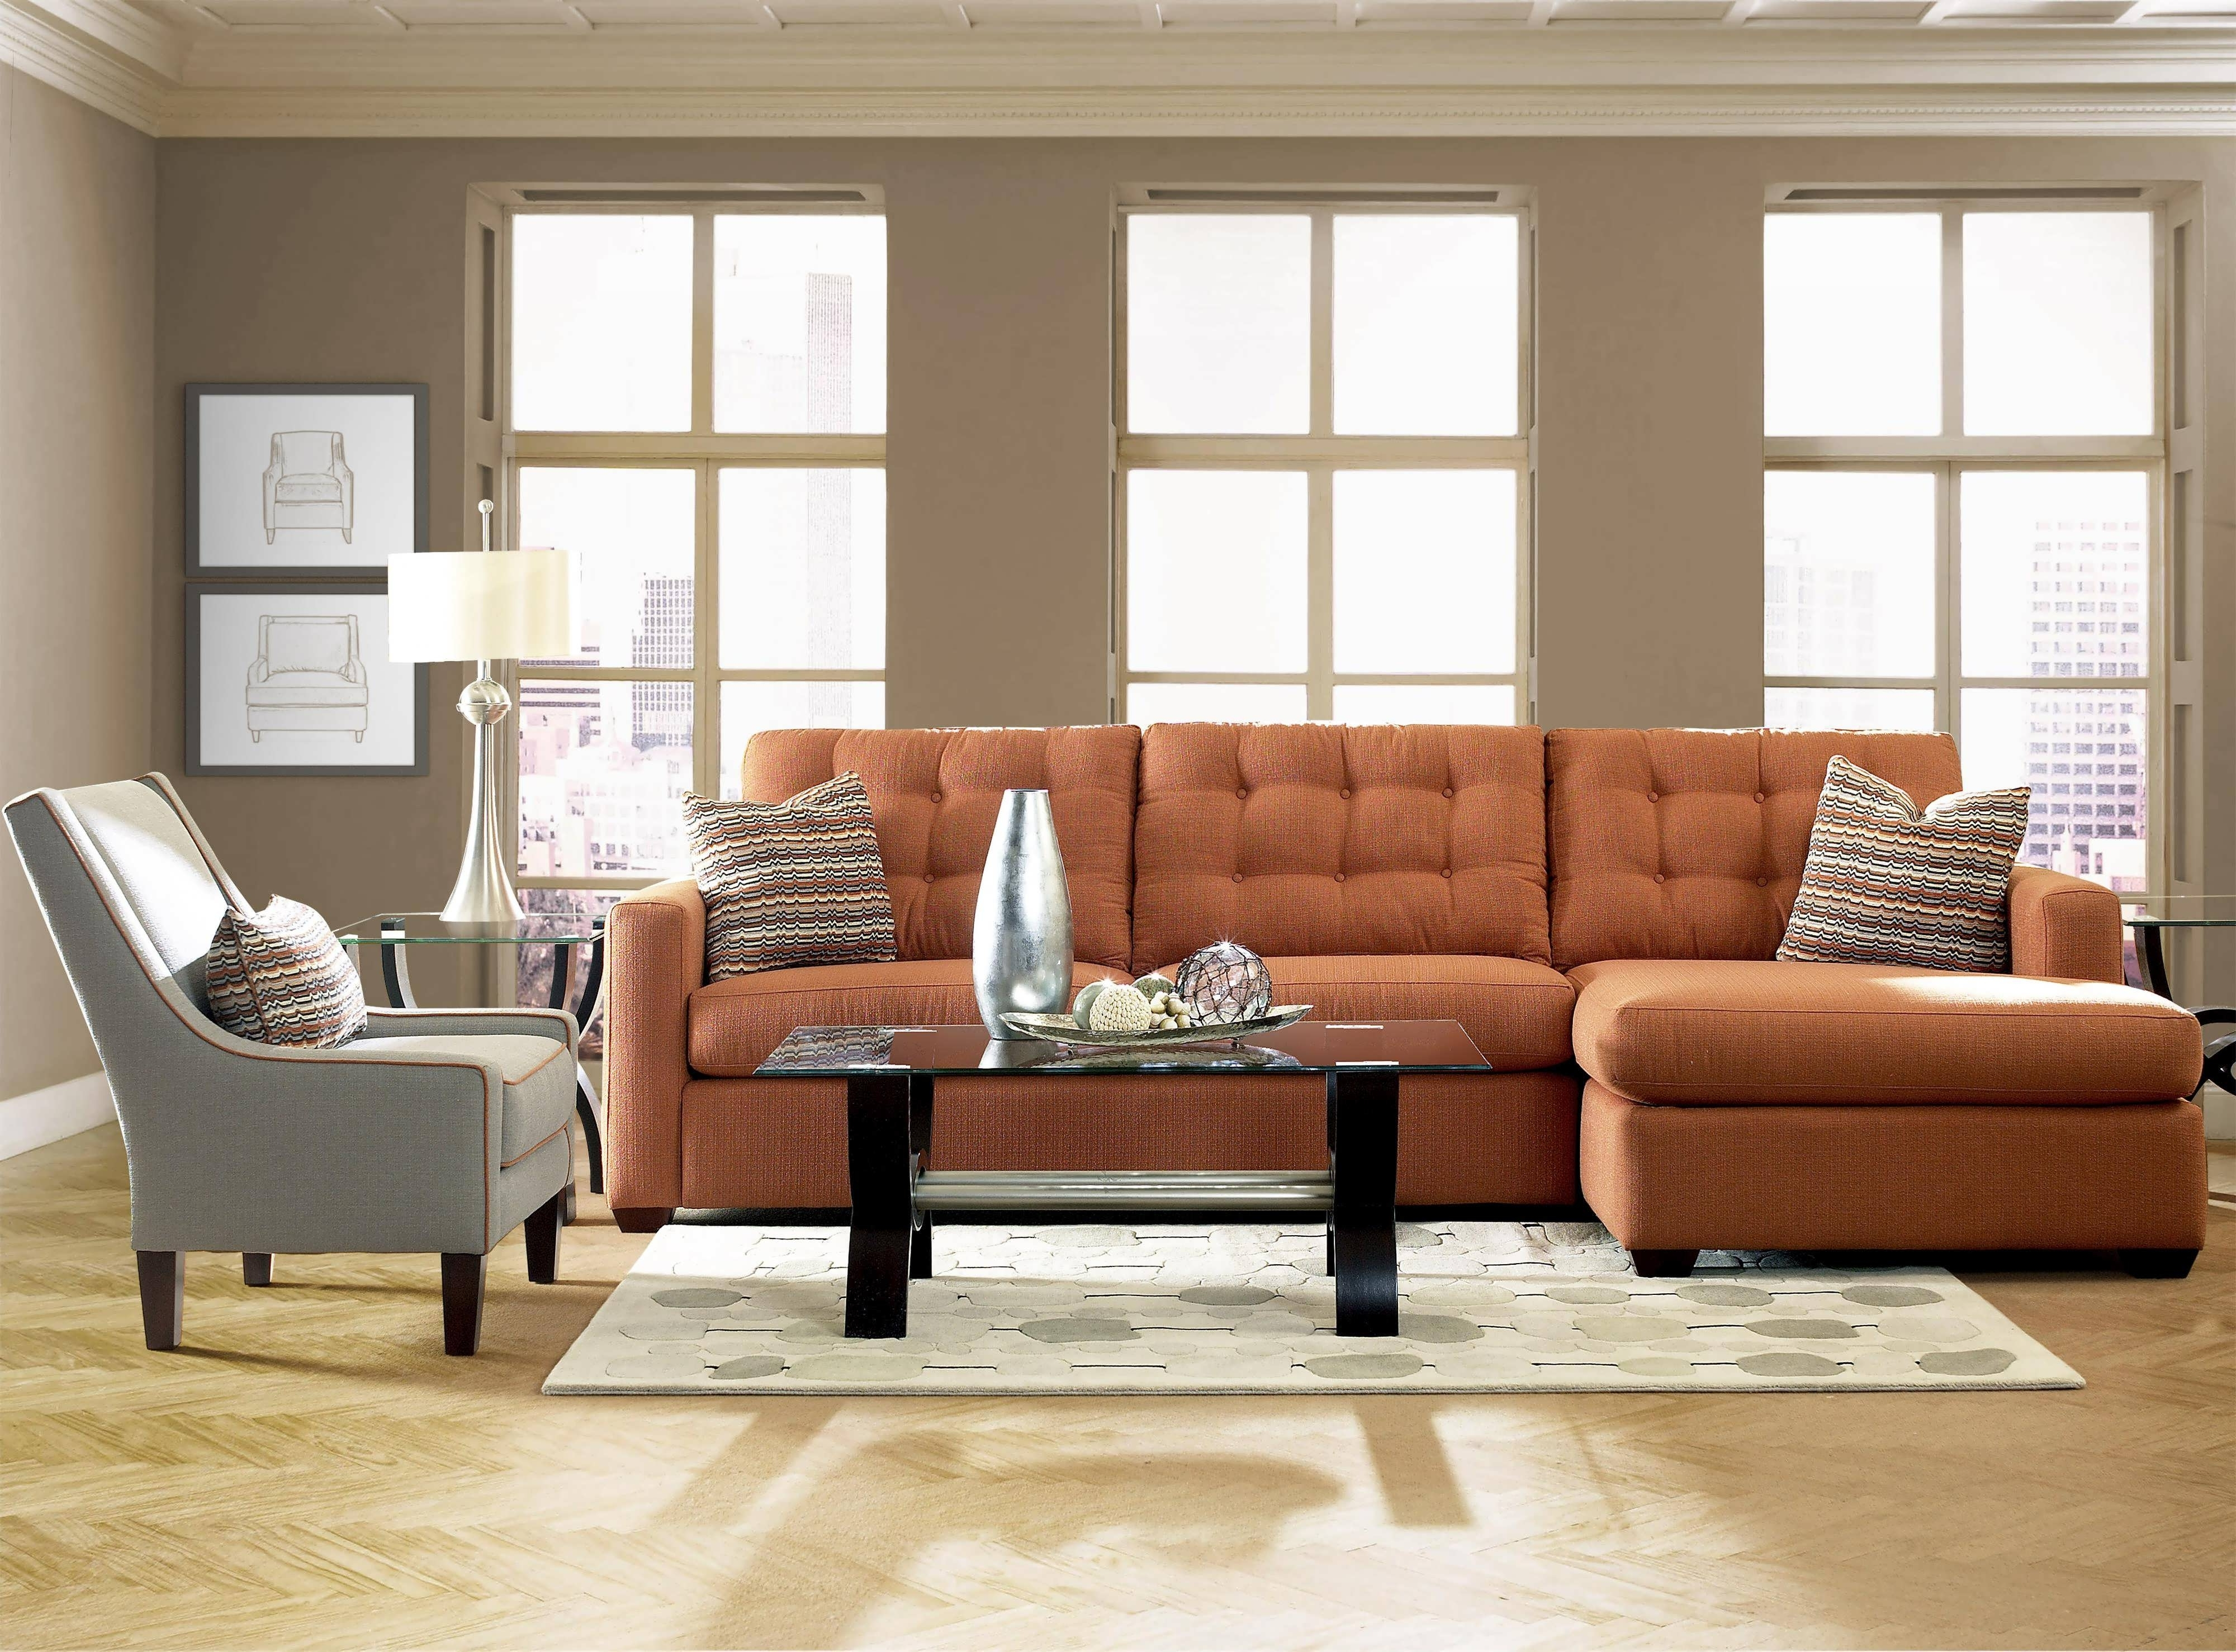 Sofa Chaise Sectionals Pertaining To Most Popular Sofa : Gray Sectional Sectionals For Sale Small L Shaped Sofa (View 14 of 15)